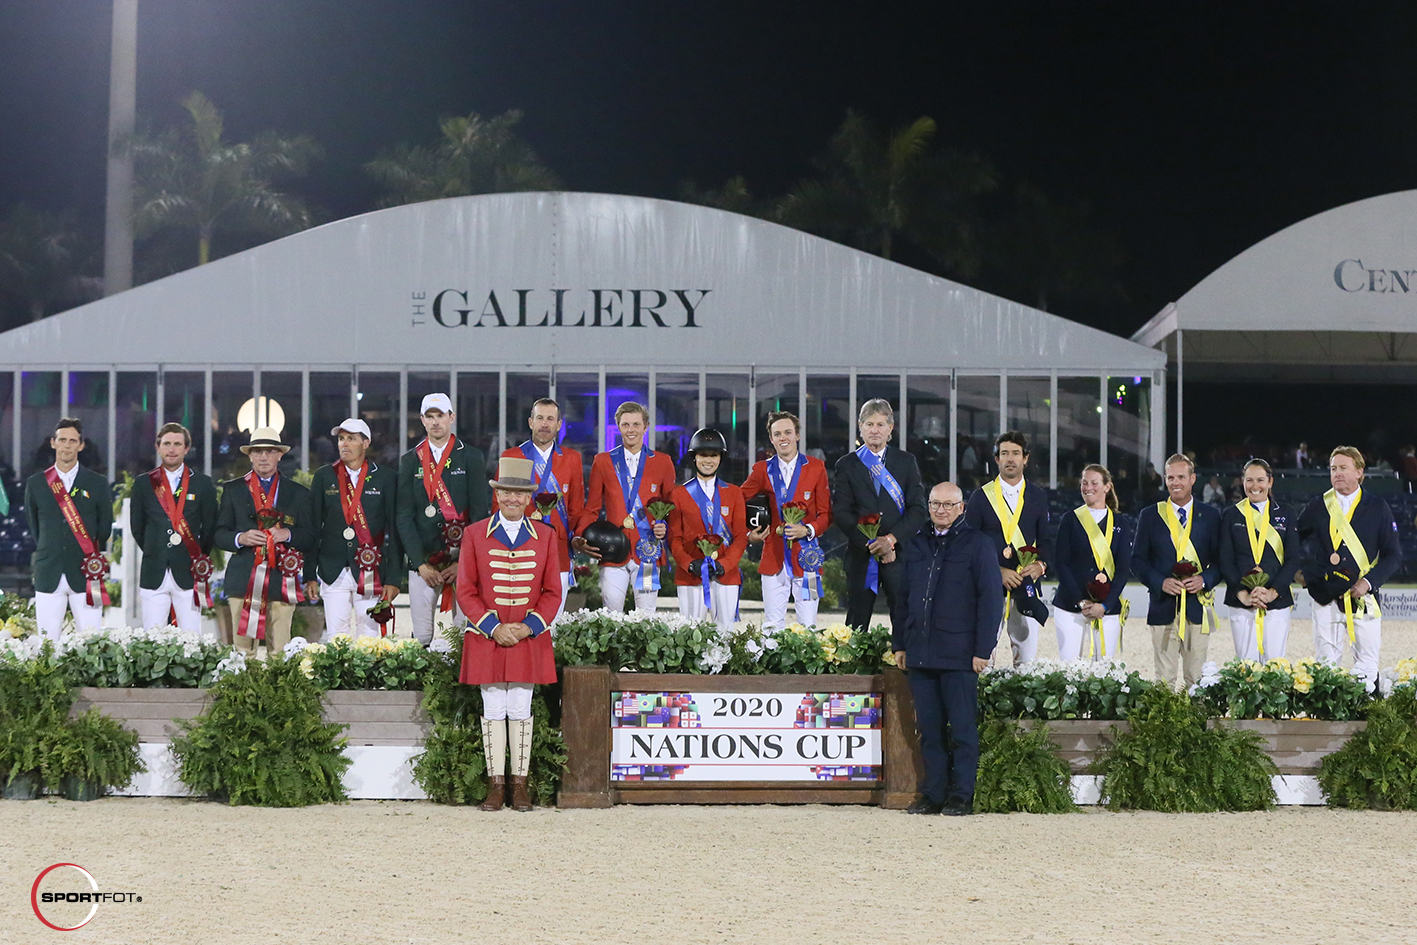 Nations Cup Podium by Sportfot 536_3322